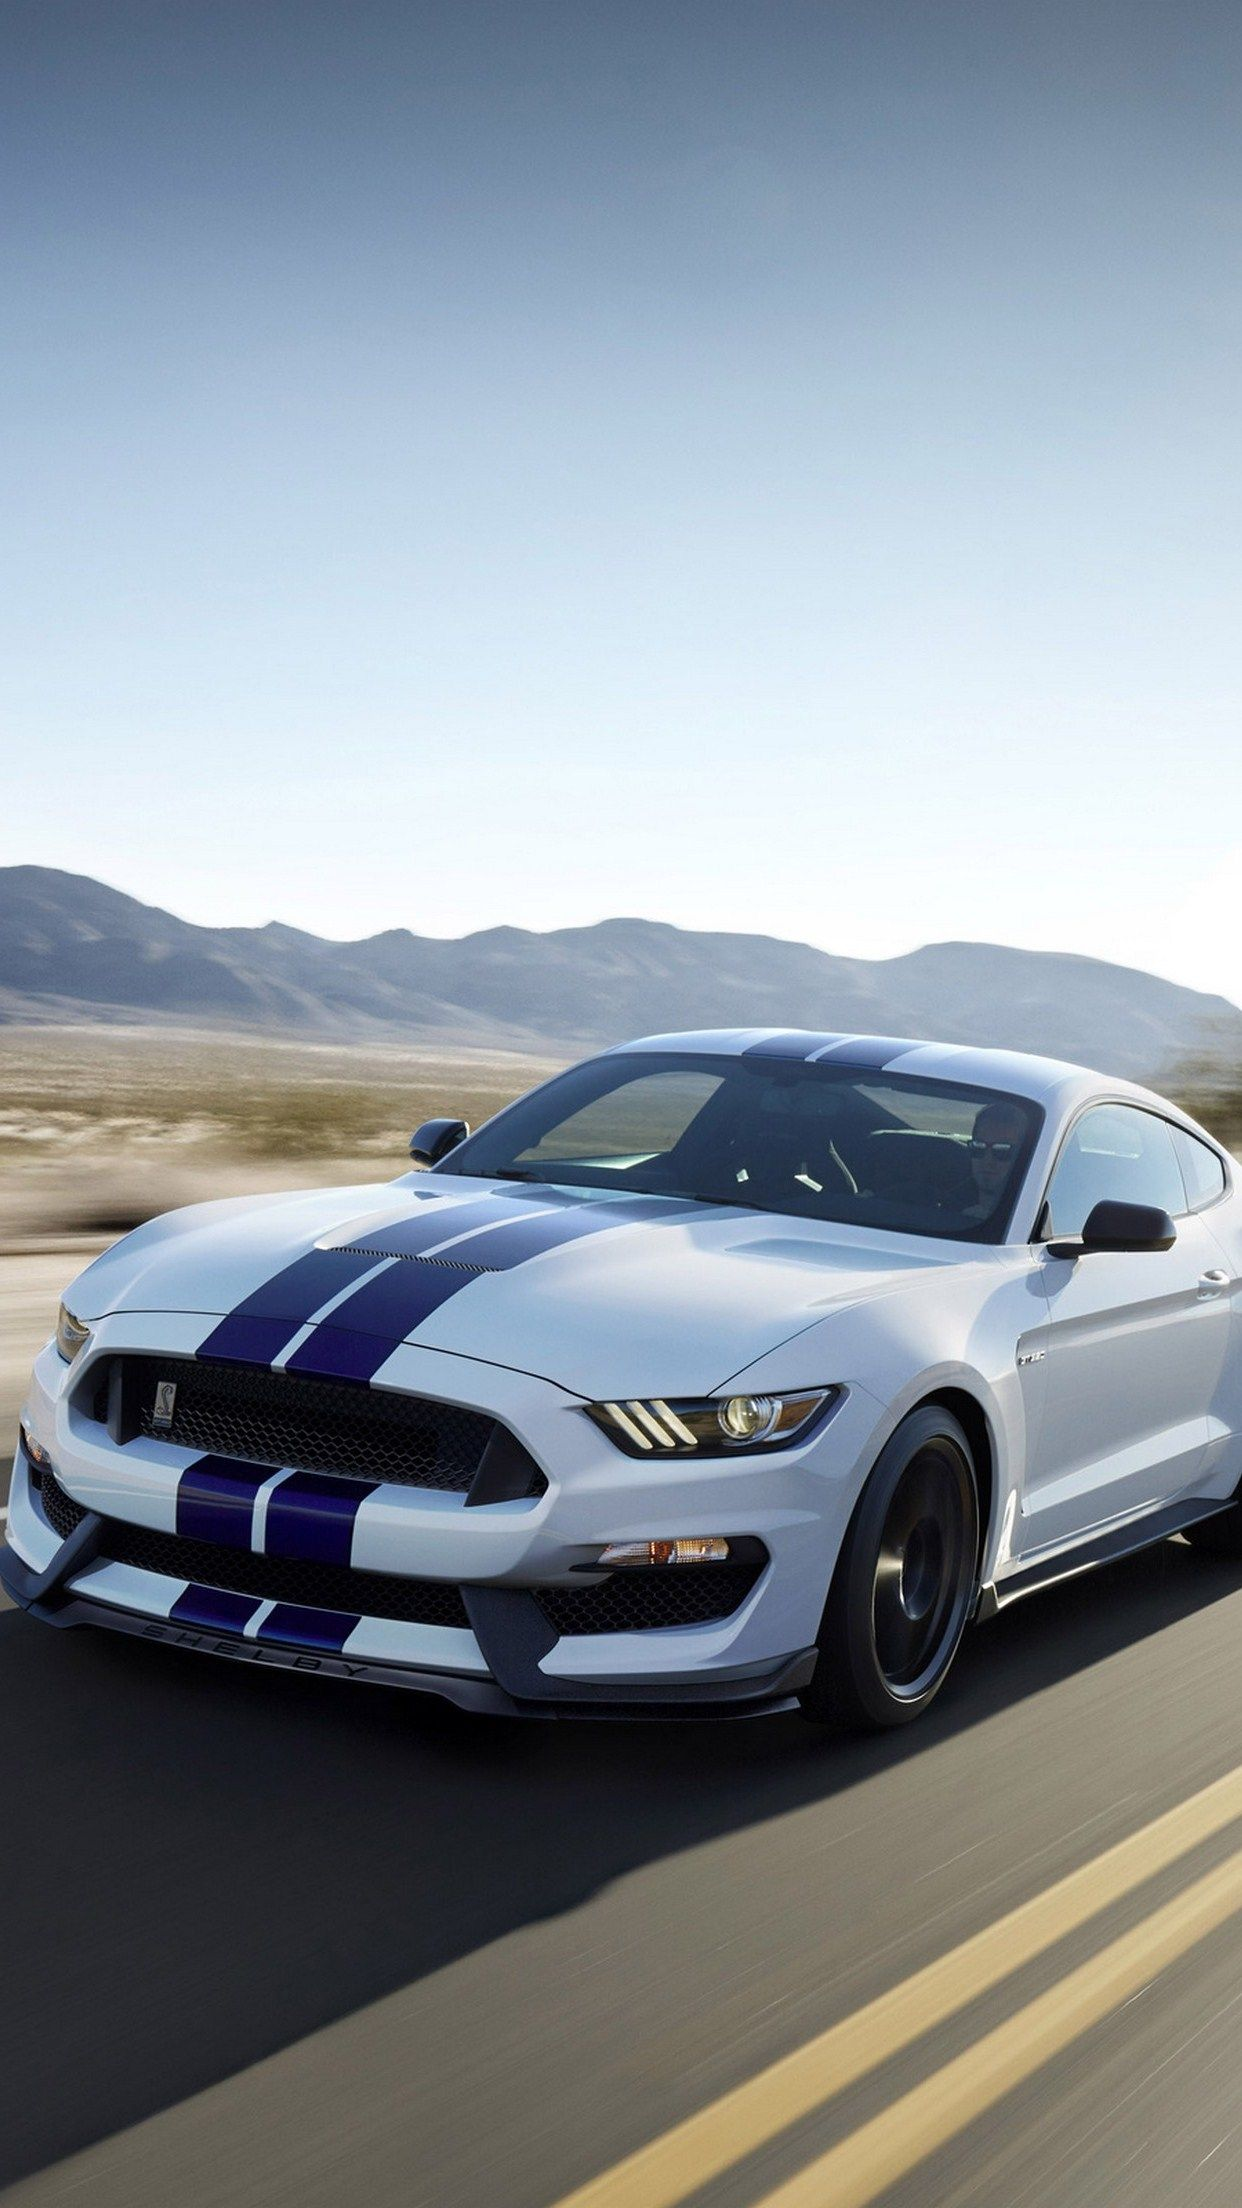 Mustang Shelby 3wallpapers Iphone Parallax Mustang Shelby Ford Mustang Mustang Cars